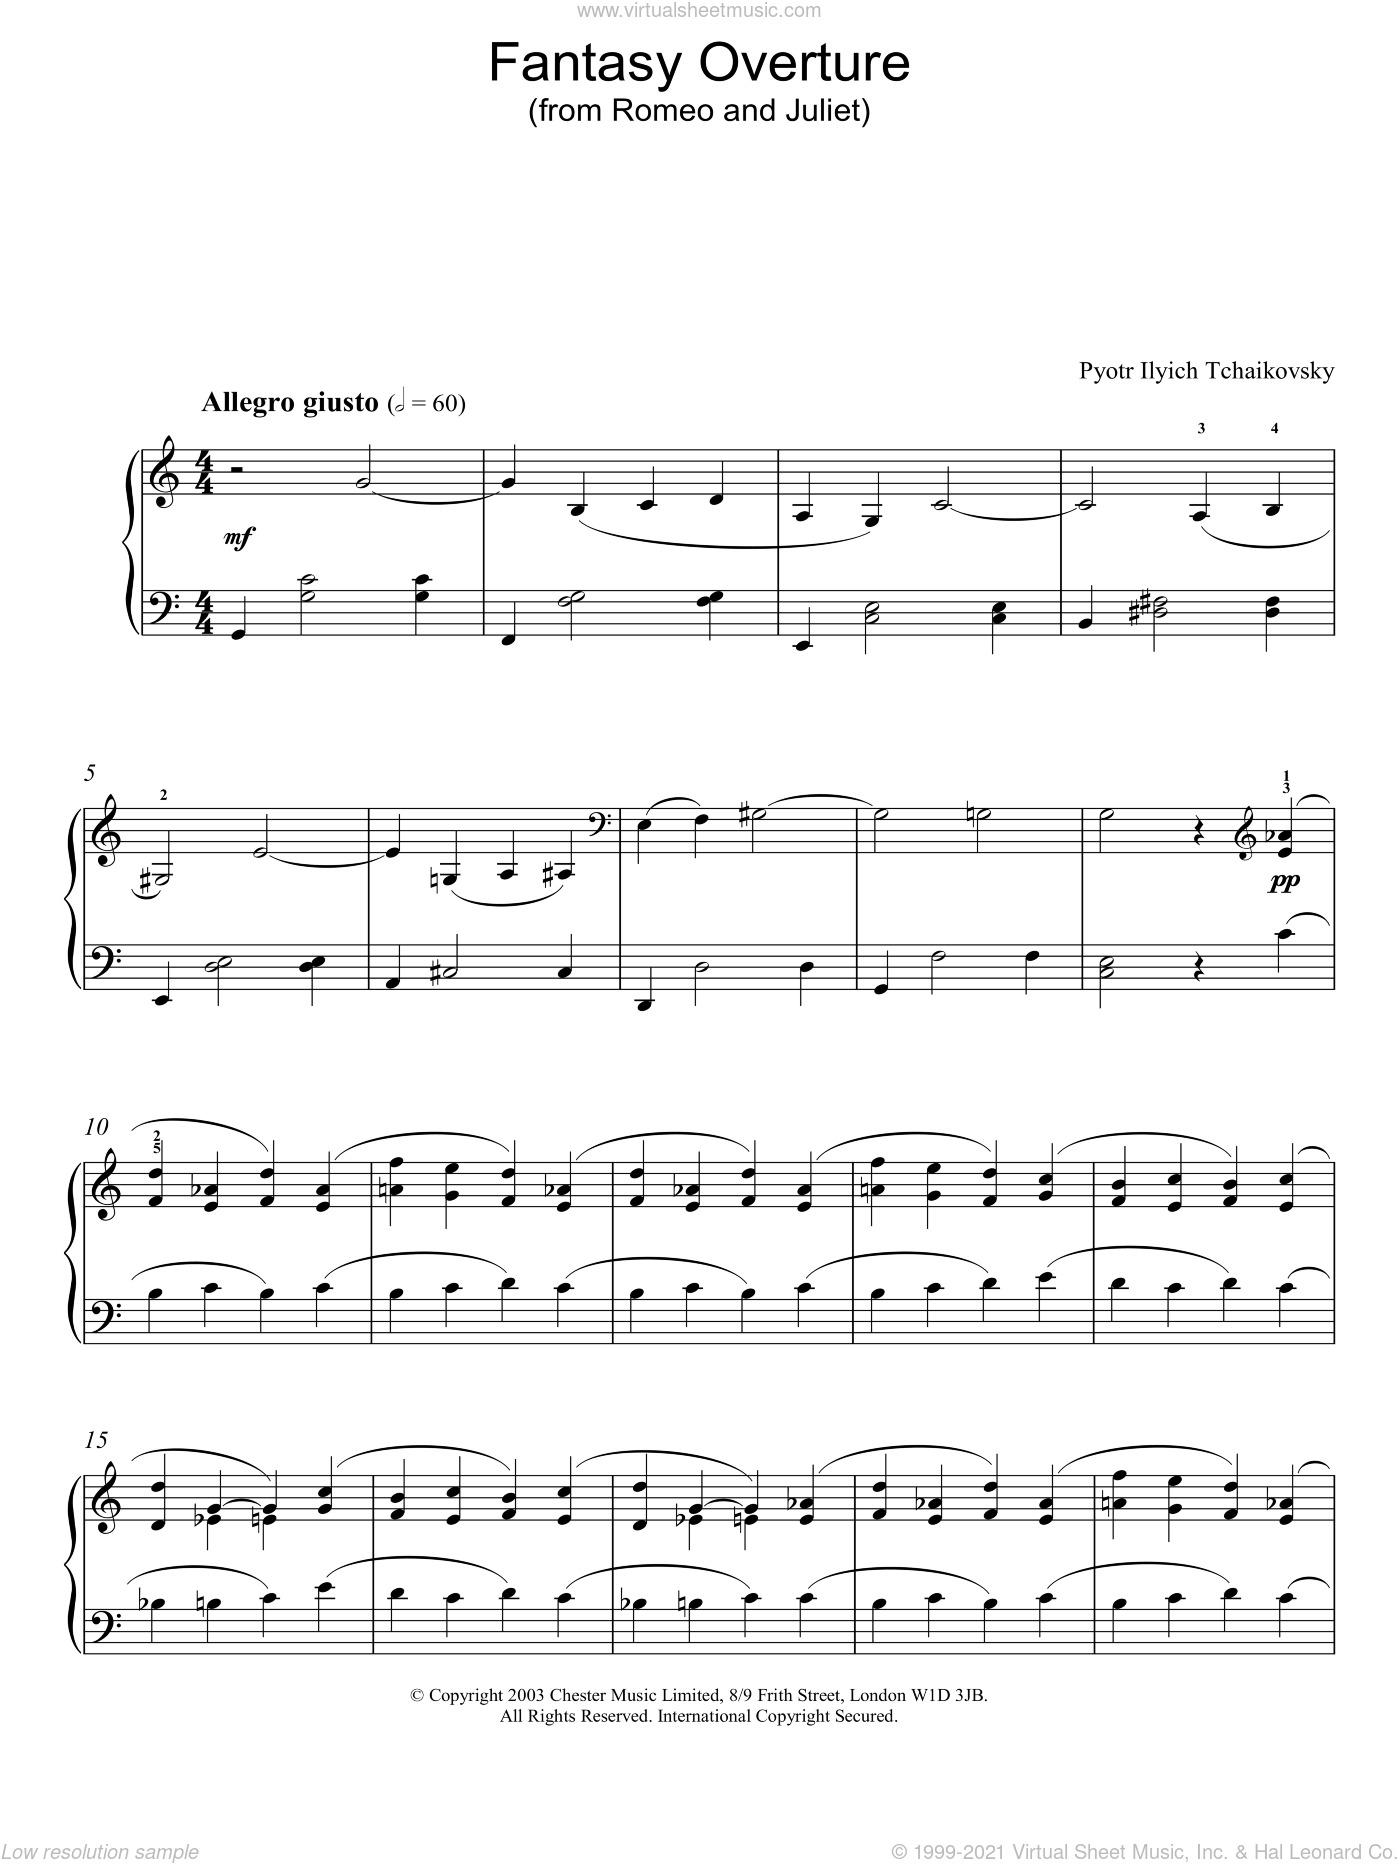 Fantasy Overture (from Romeo And Juliet) sheet music for piano solo by Pyotr Ilyich Tchaikovsky